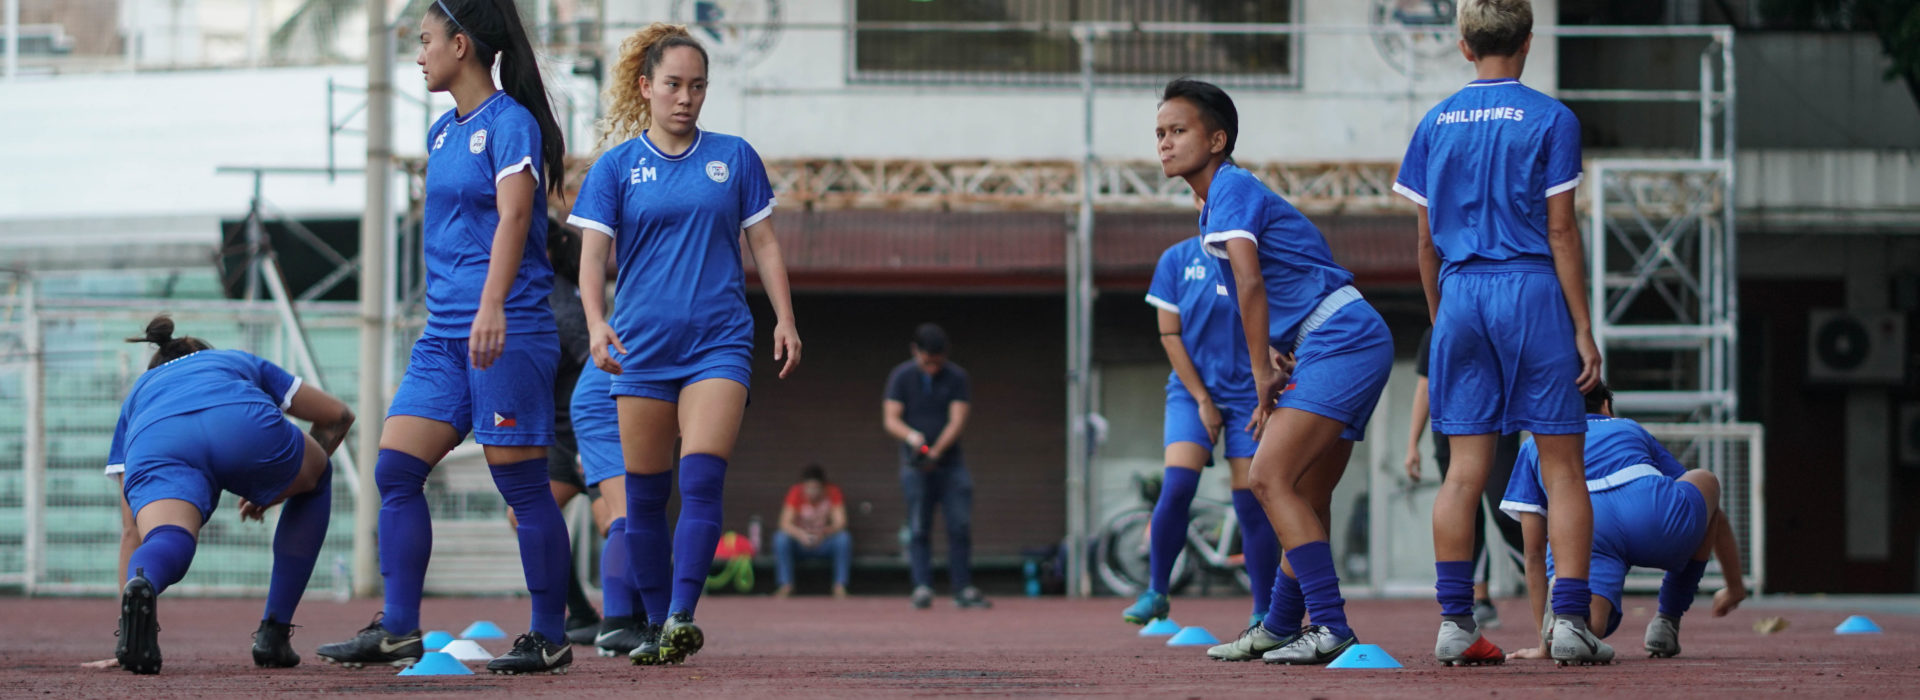 Philippines WNT in Full Preparation for Olympic Qualifiers Round 2. The  Philippines Women s National Team s ... dbe4534e5